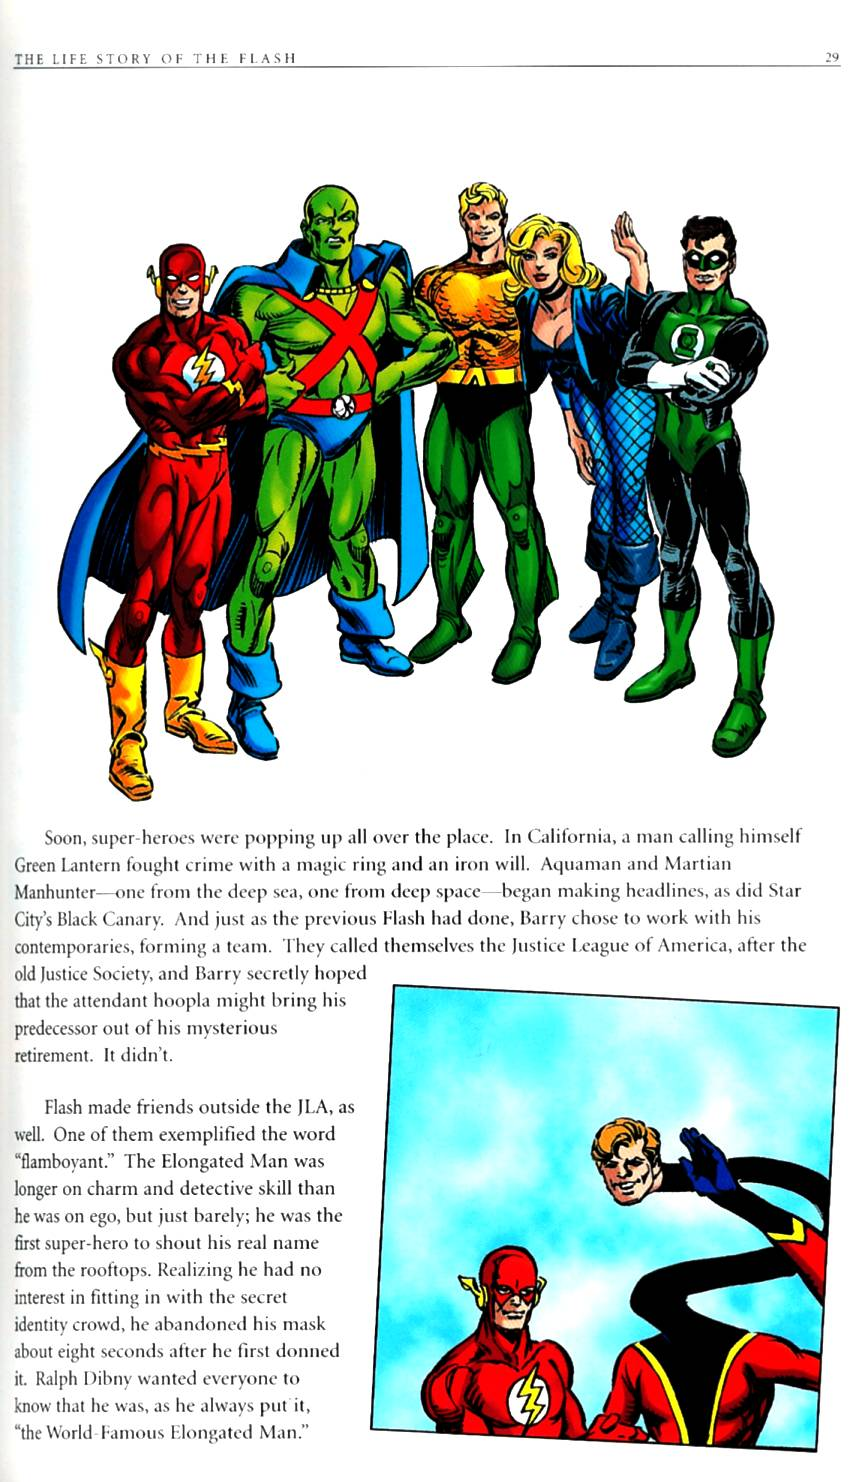 Read online The Life Story of the Flash comic -  Issue # Full - 31